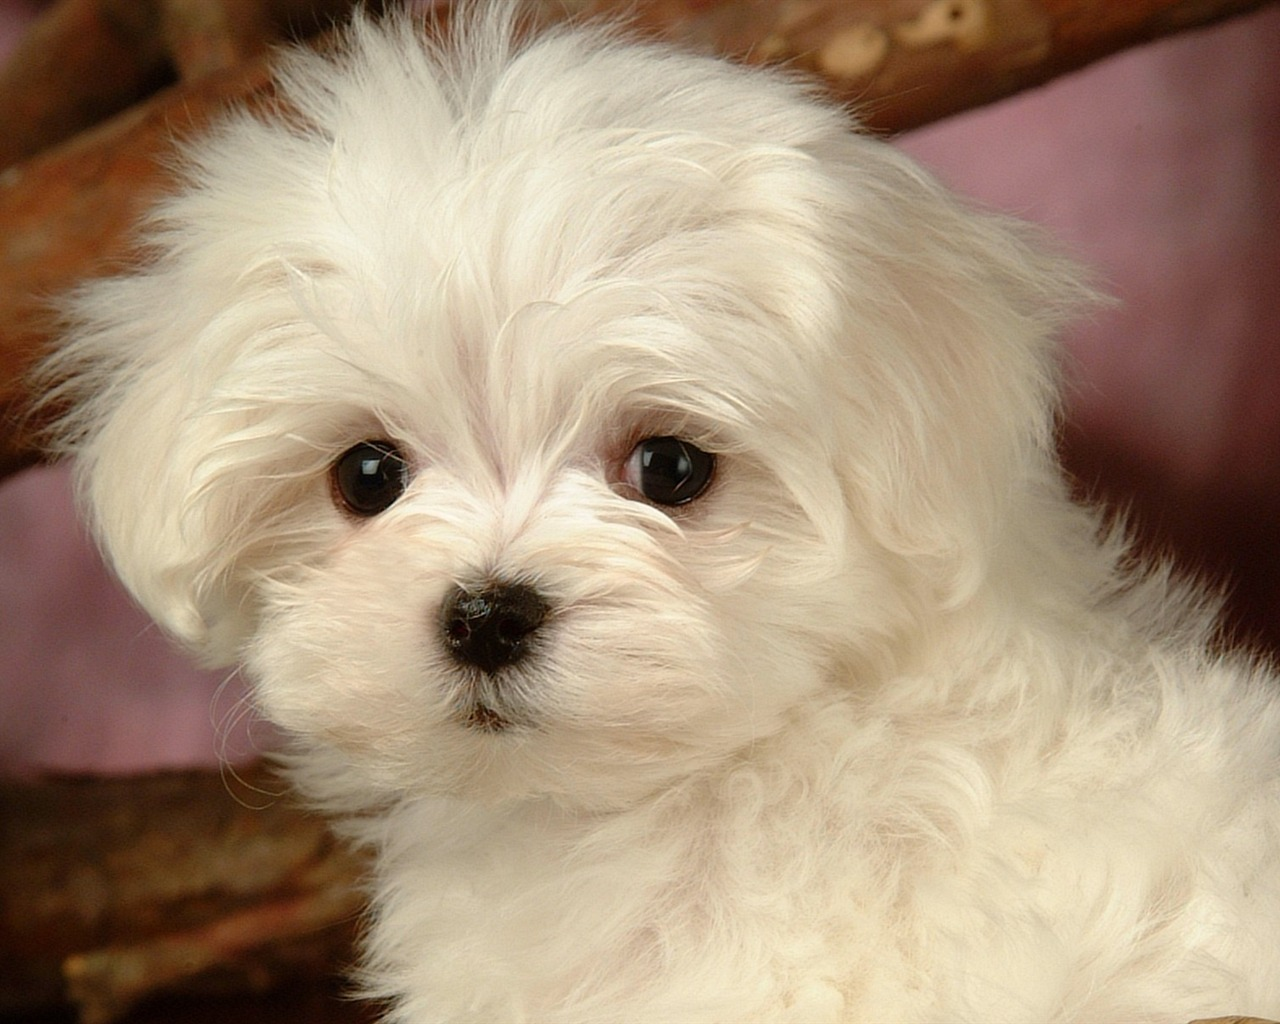 Lovely Little White Fluffy Puppy Wallpaper 18 Preview